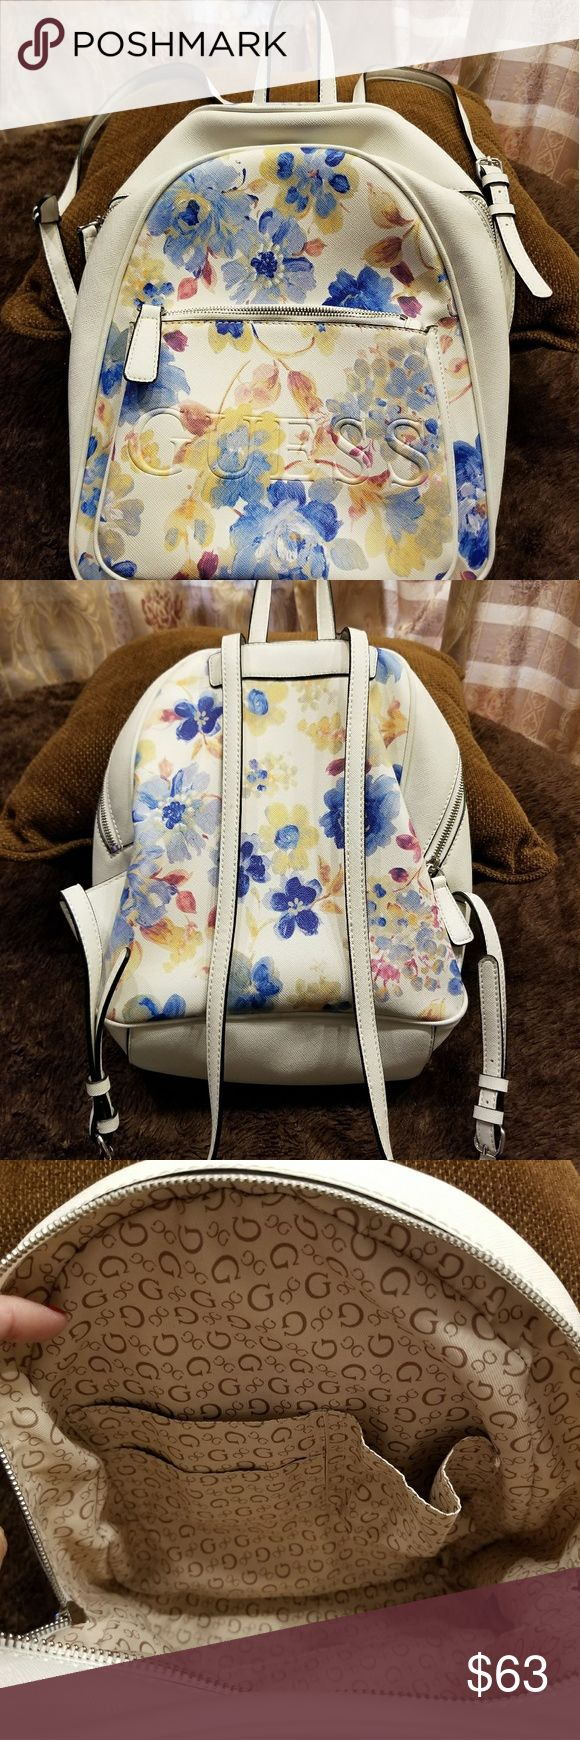 """GUESSWomen's White Backpack with Flowers-NWOT! GUESS Women's White Backpack with Flowers. New Without Tags!!! One outside pocket with zipper. Four inside pockets. 10.5"""" L x 12.5"""" H x 4"""" W. Guess Bags Backpacks"""